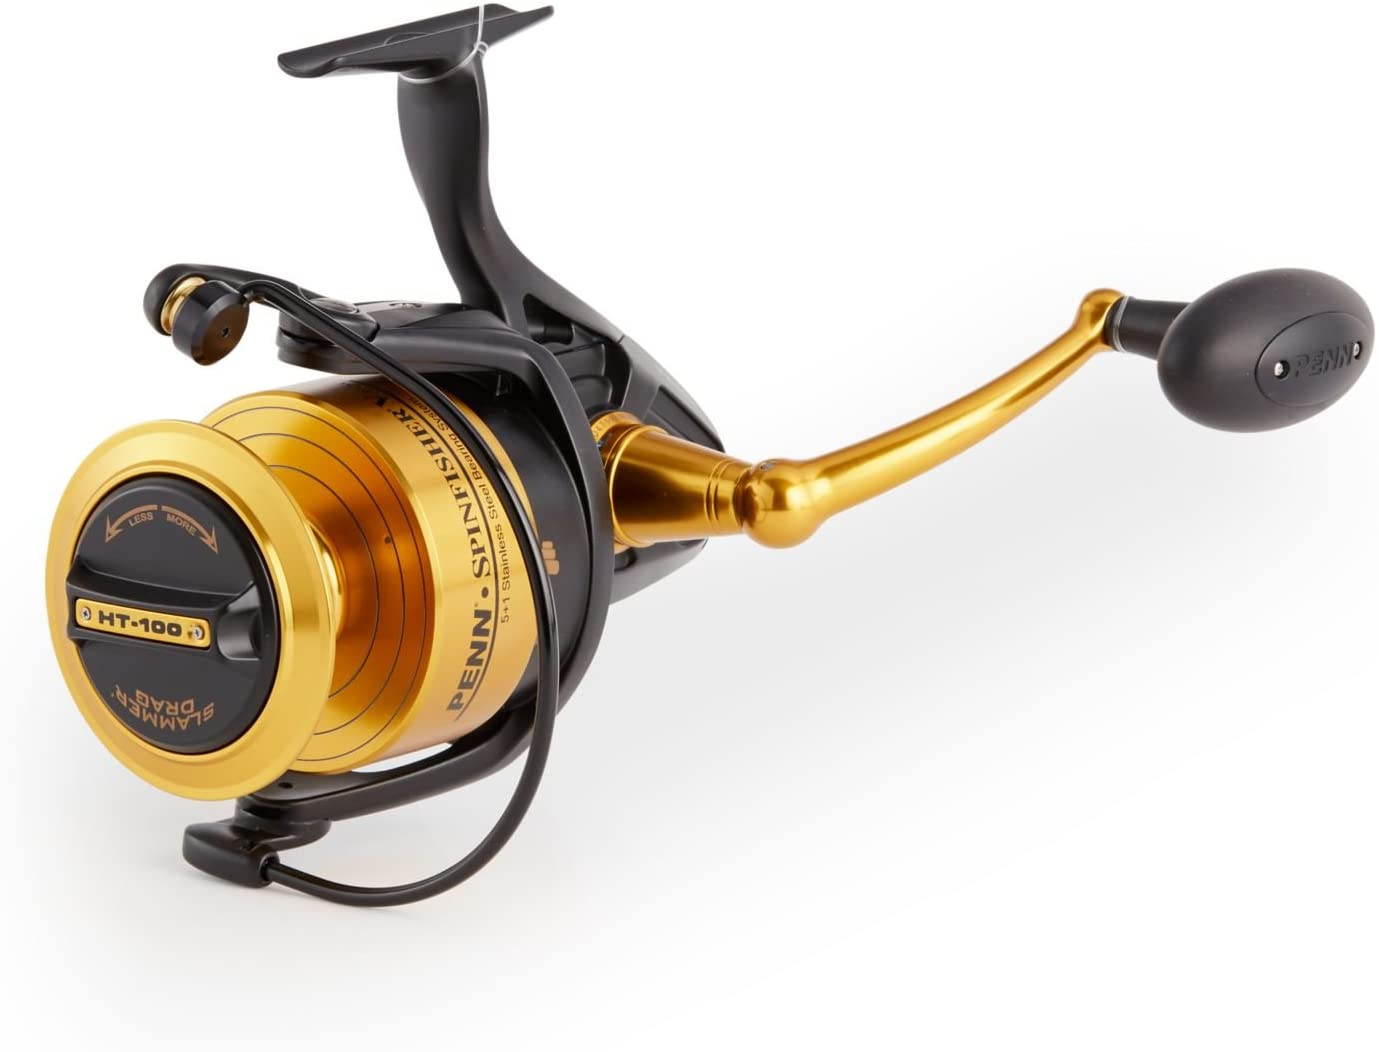 Best Spinning Reel: PENN Spinfisher V Spinning Fishing Reel